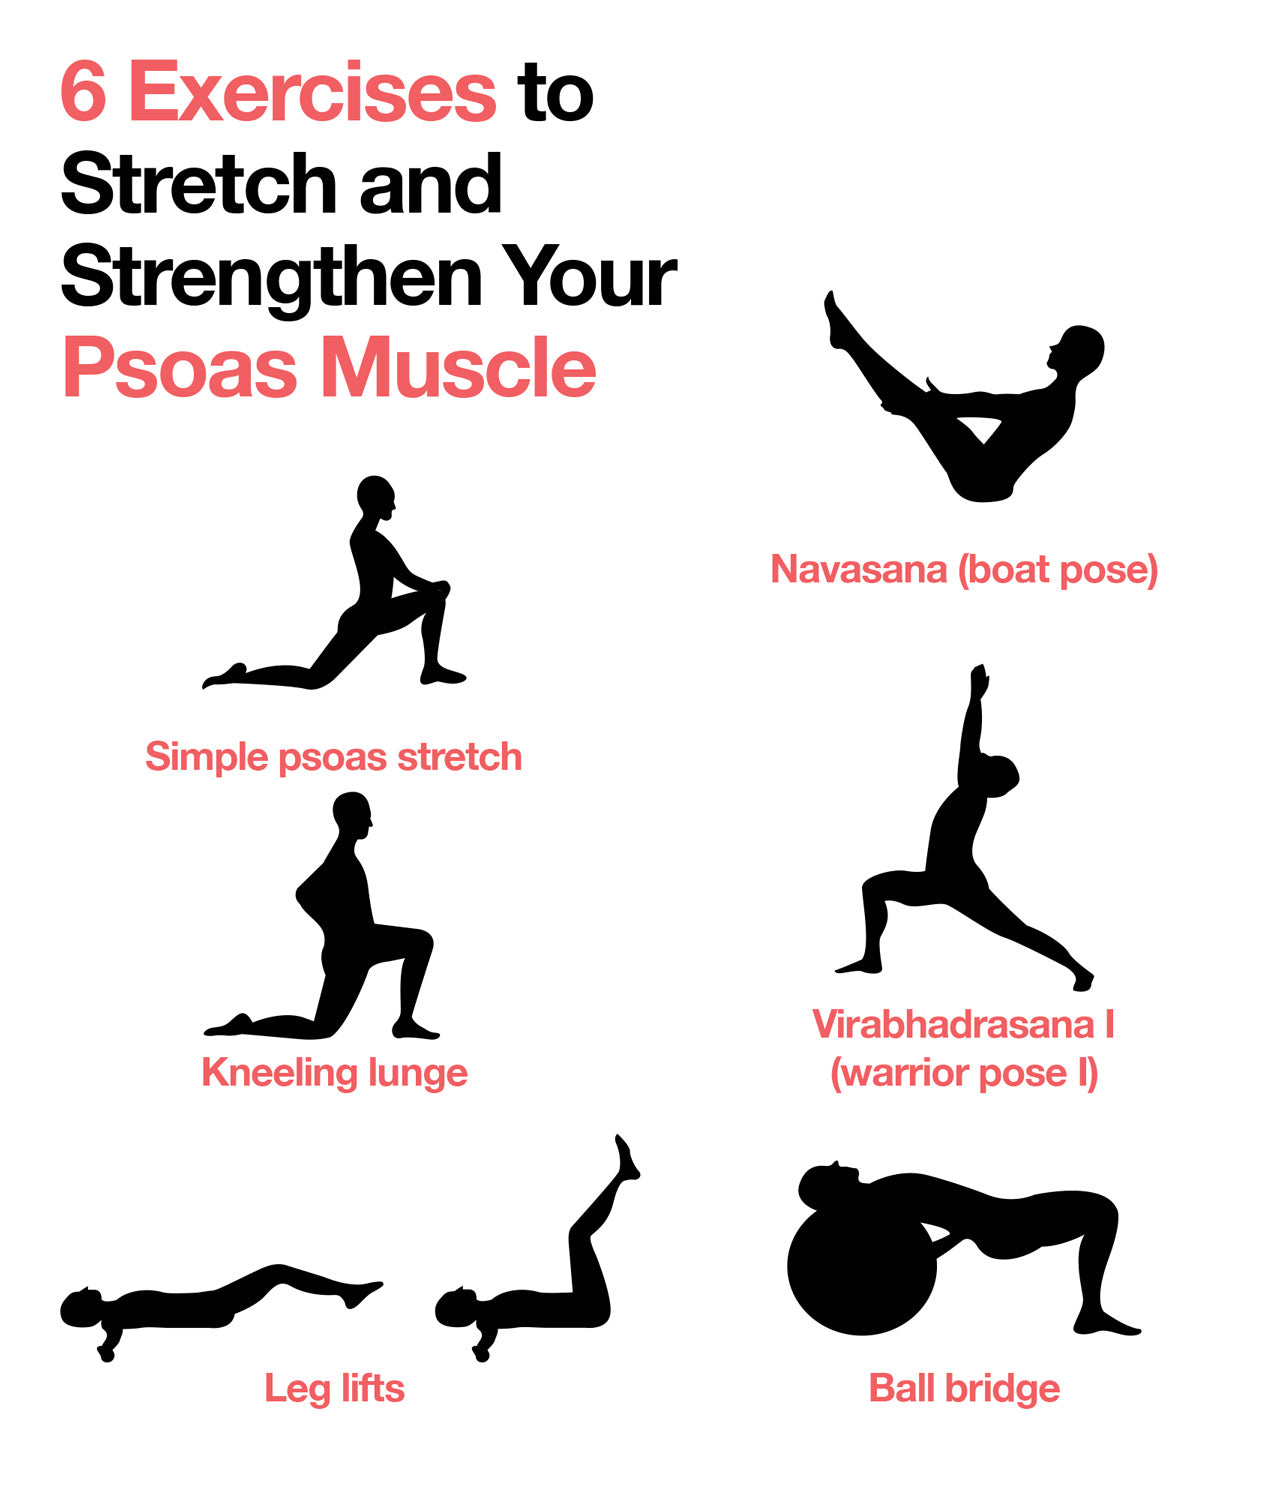 Here are 6 Exercises to Stretch and Strengthen Your Psoas Muscle.